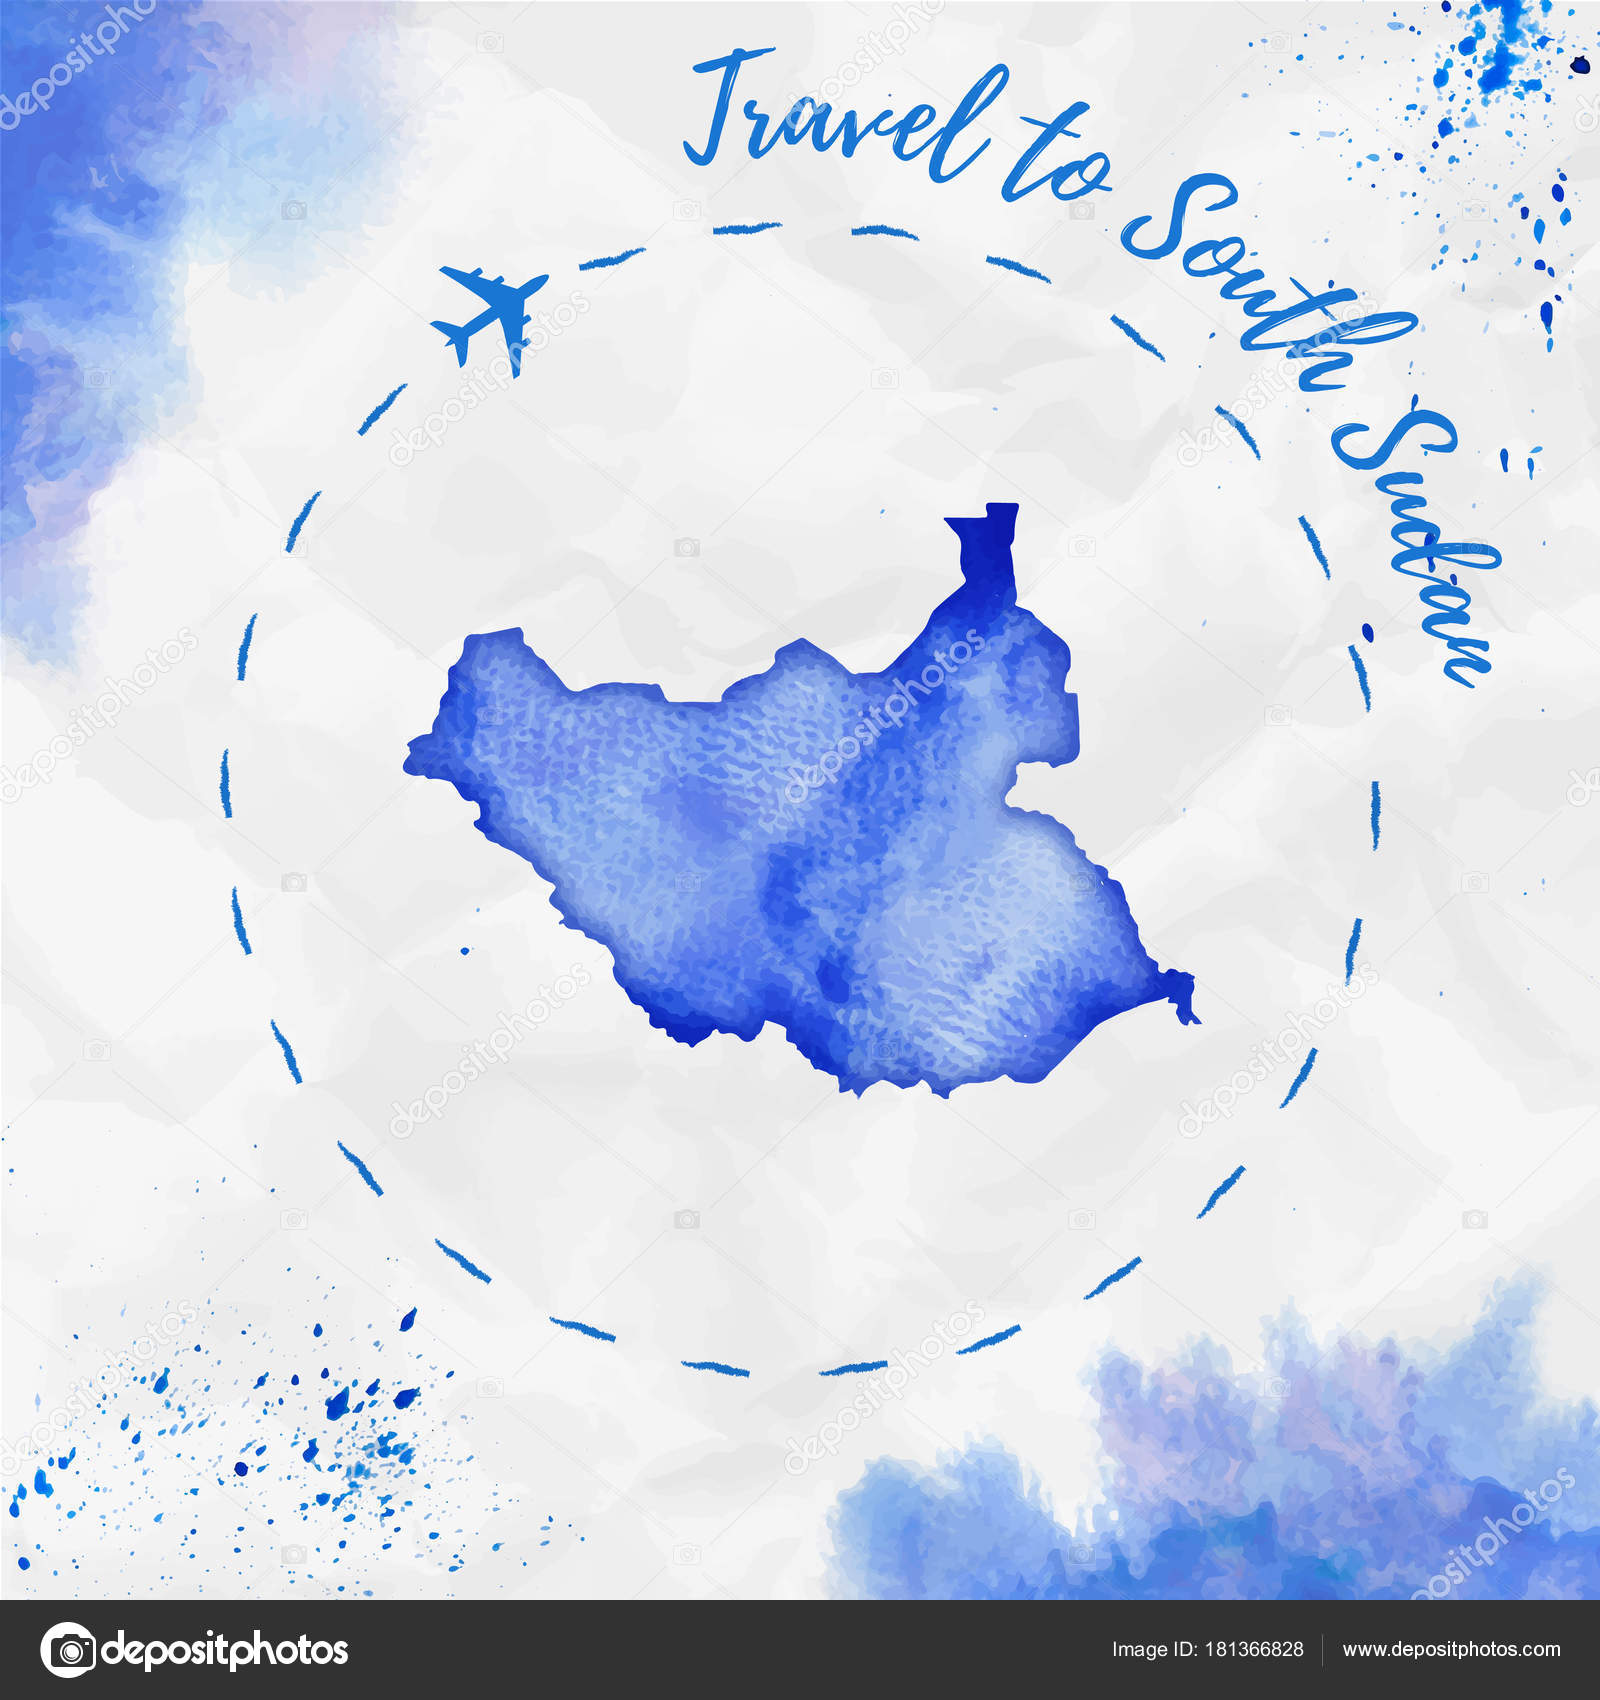 South sudan watercolor map in blue colors travel to south sudan south sudan watercolor map in blue colors travel to south sudan poster with airplane trace and handpainted watercolor south sudan map on crumpled paper gumiabroncs Image collections